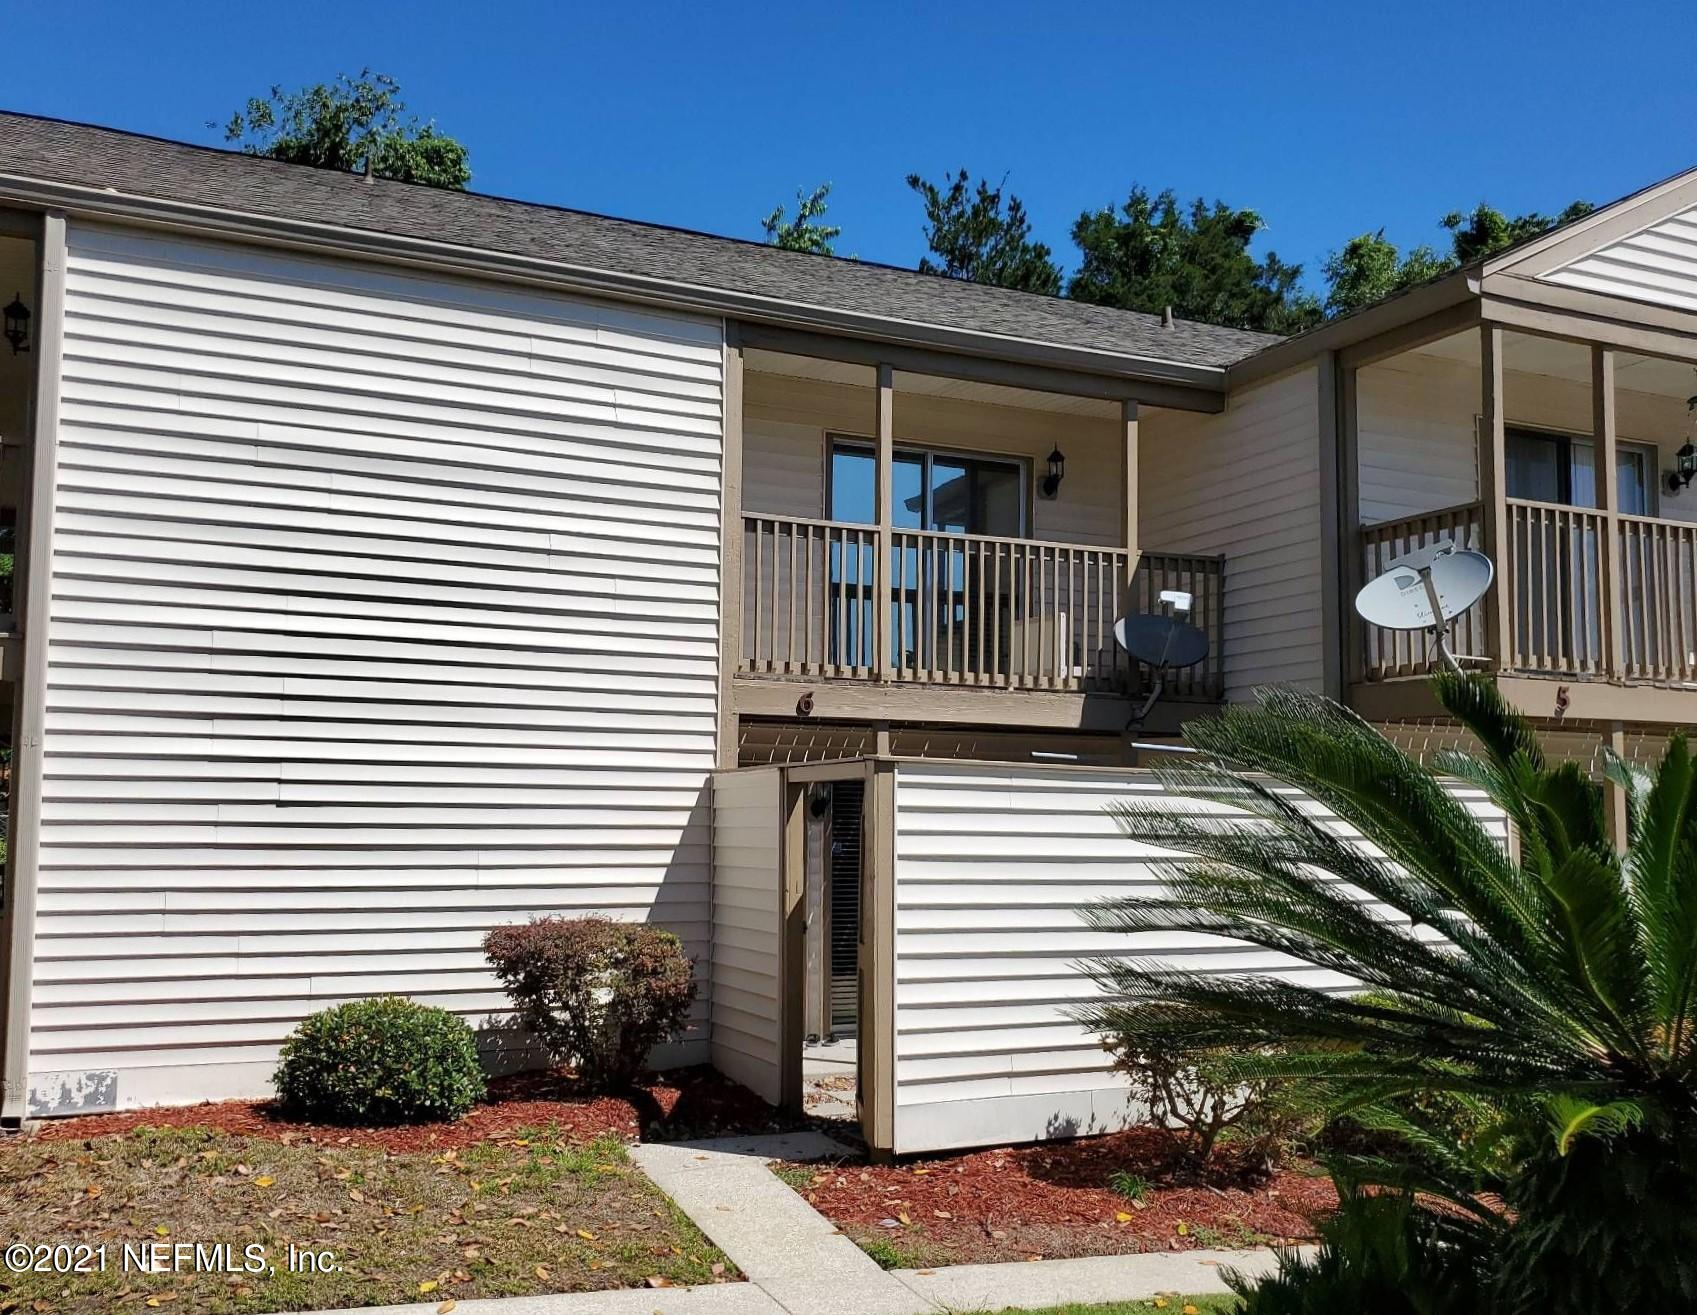 2300 TWELVE OAKS, ORANGE PARK, FLORIDA 32065, 2 Bedrooms Bedrooms, ,1 BathroomBathrooms,Residential,For sale,TWELVE OAKS,1108888